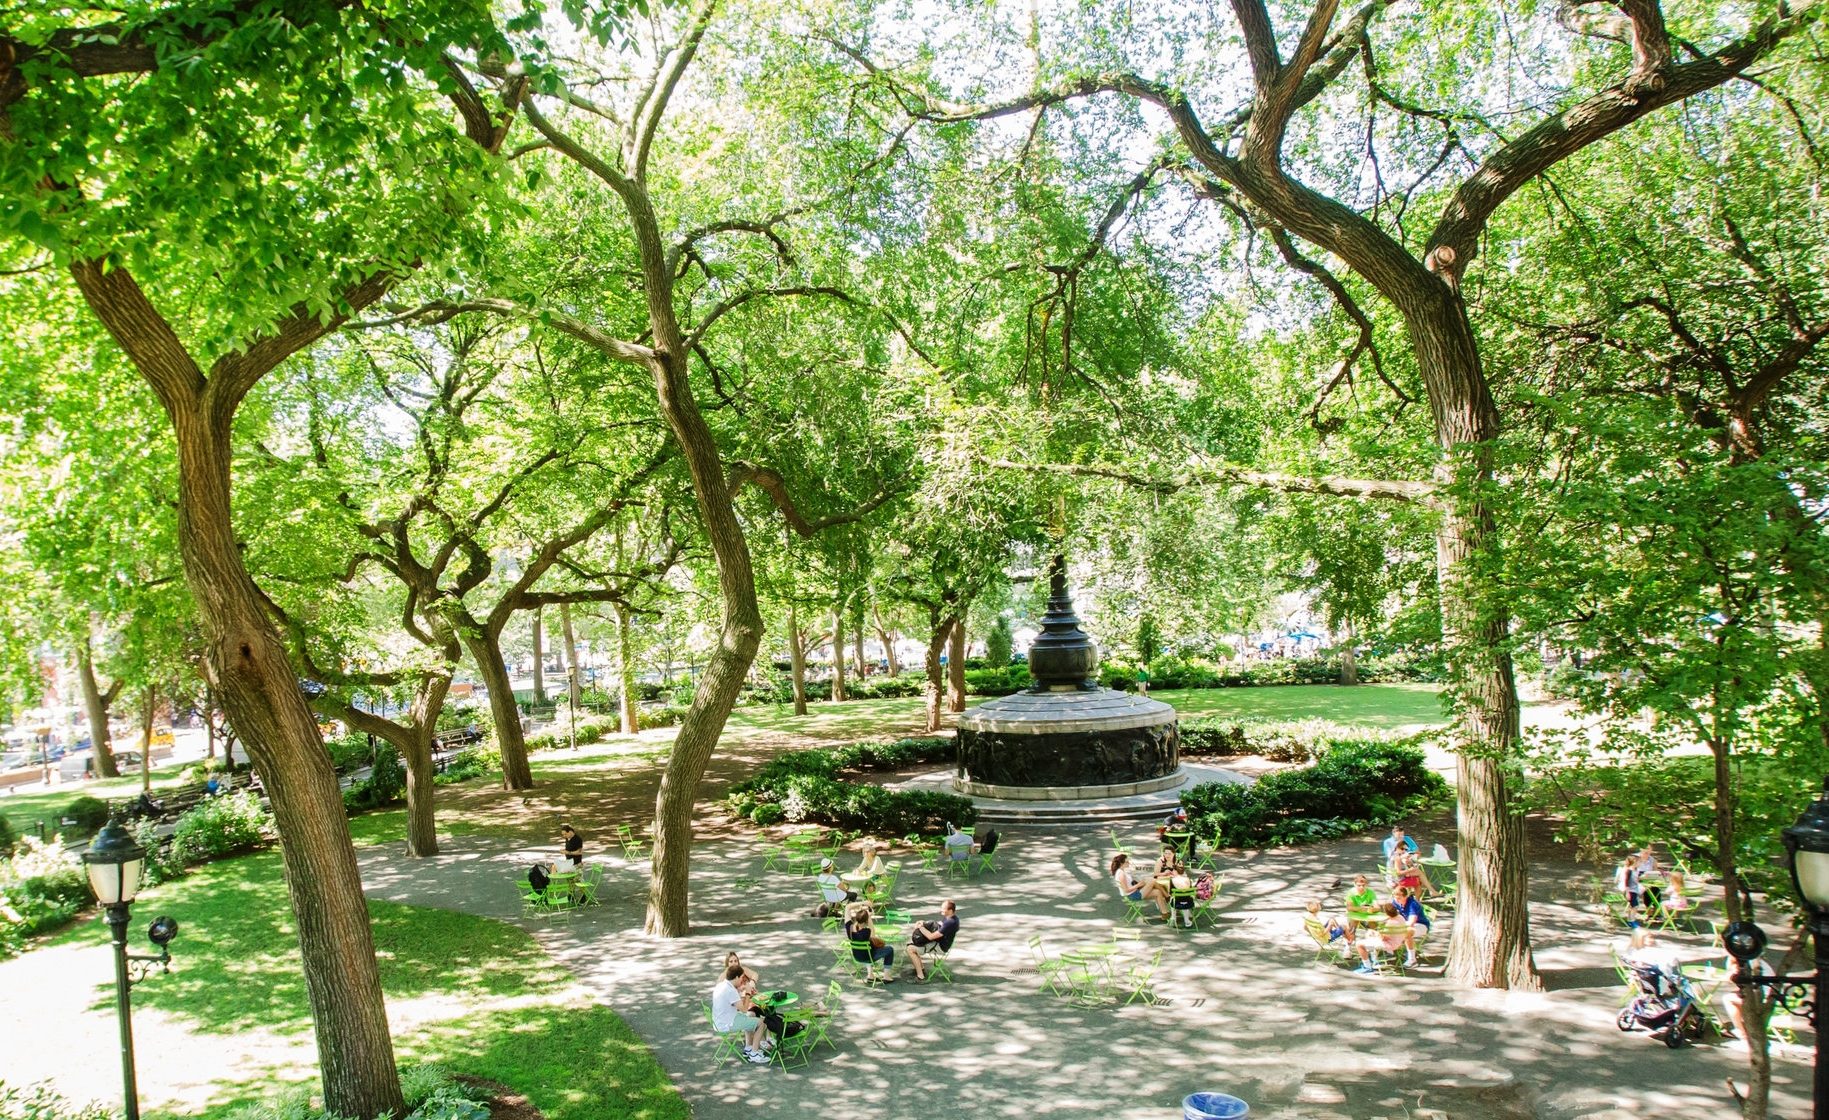 Explore the difference between Union Square Park's original 1839 design and current design of the park.